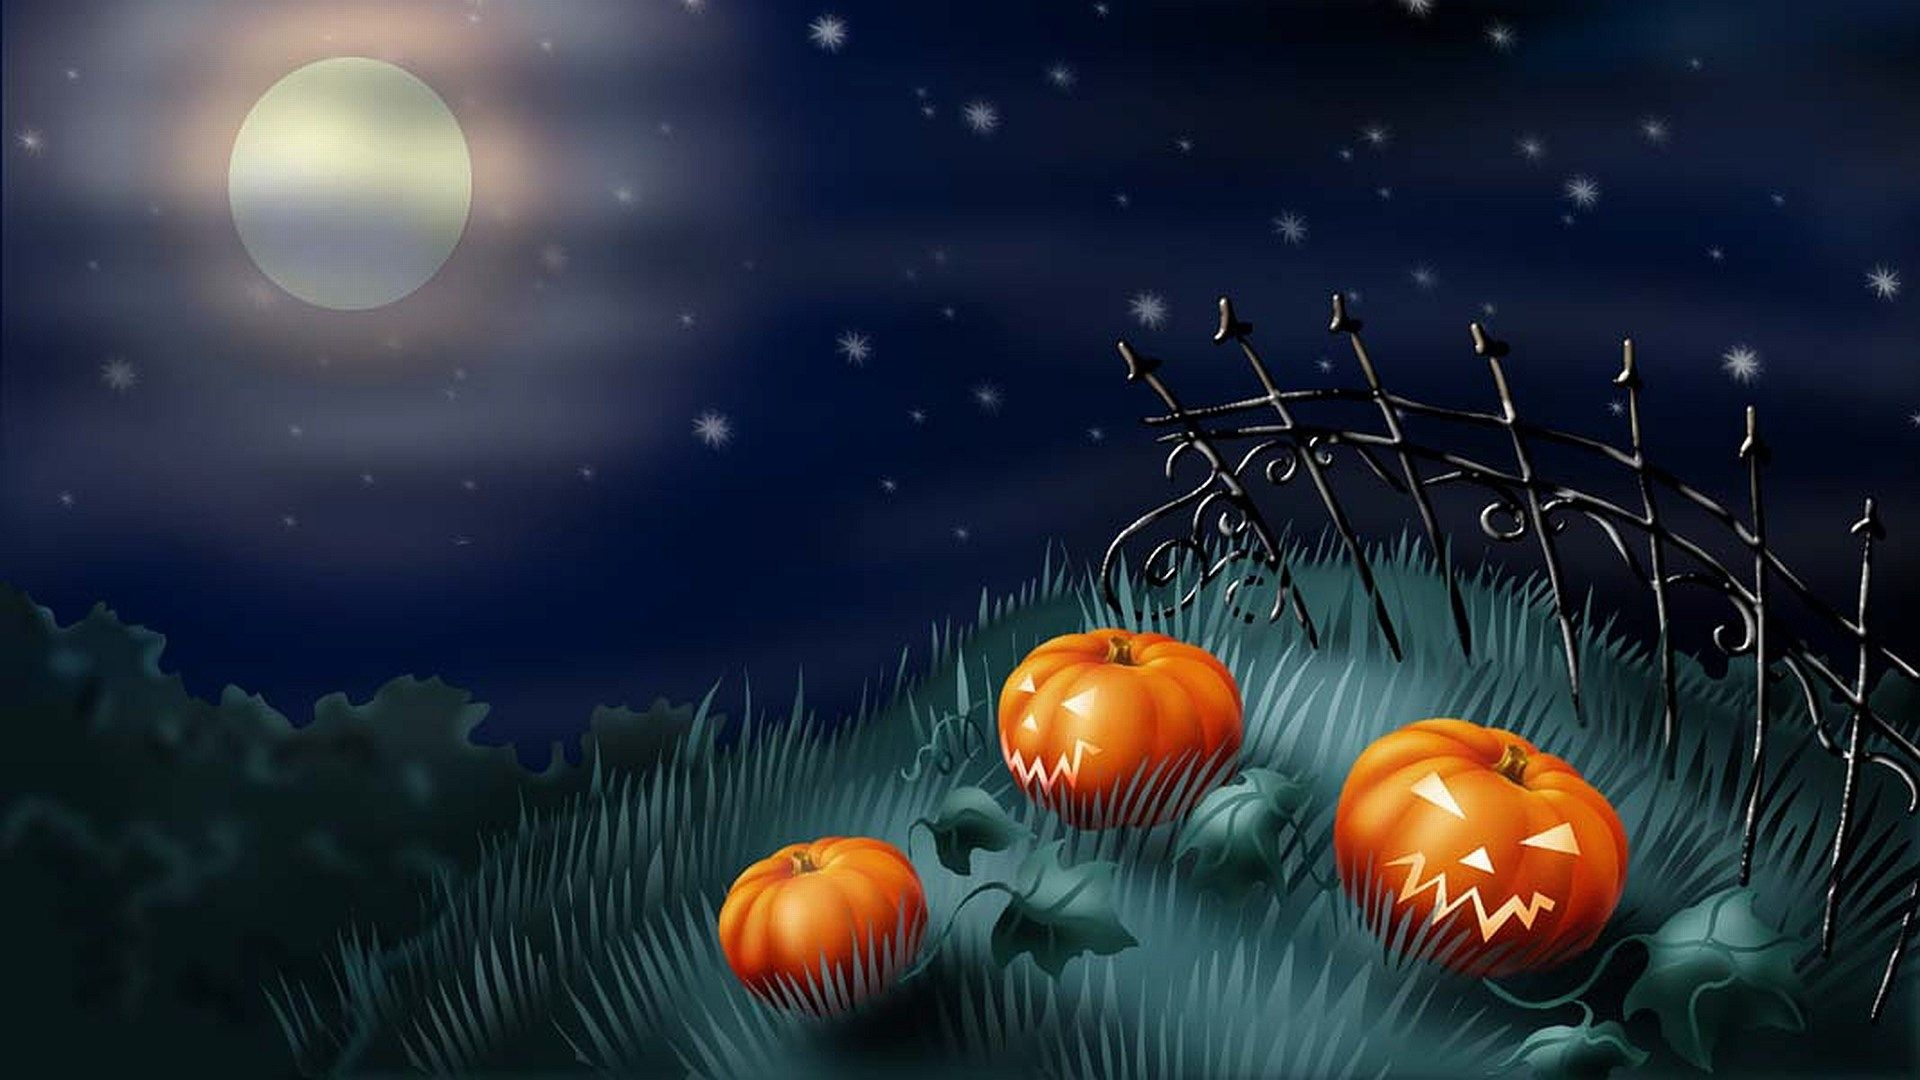 Halloween Desktop Backgrounds Wallpaper Halloween Pictures Halloween Wallpaper Cute Halloween